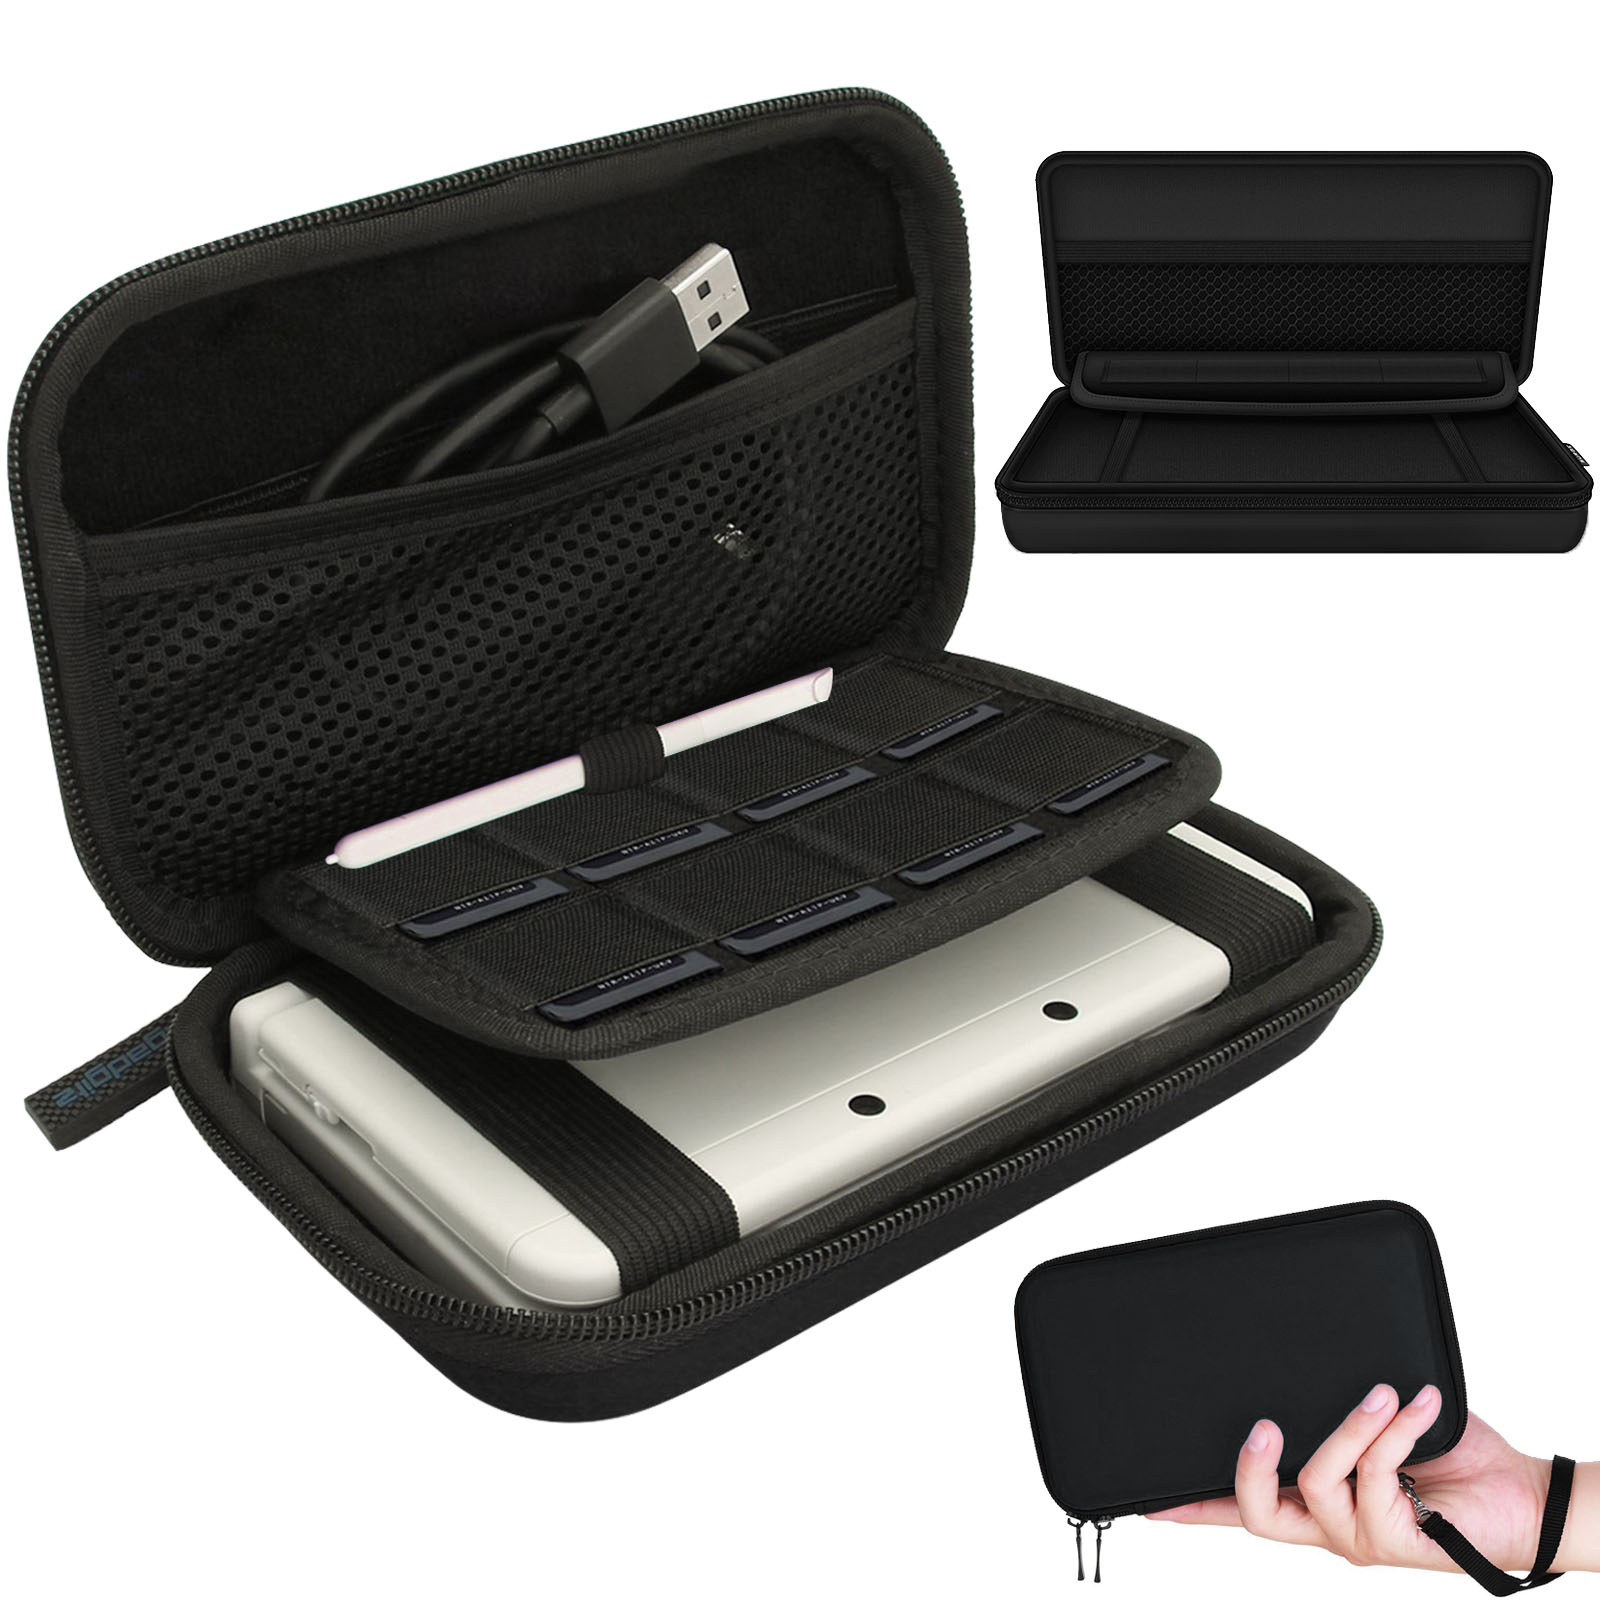 EVA Hard Protective Carry <mark>Case</mark> Bag Pouch For New <mark>Nintendo</mark> 3DS XL 3DS LL 3DS